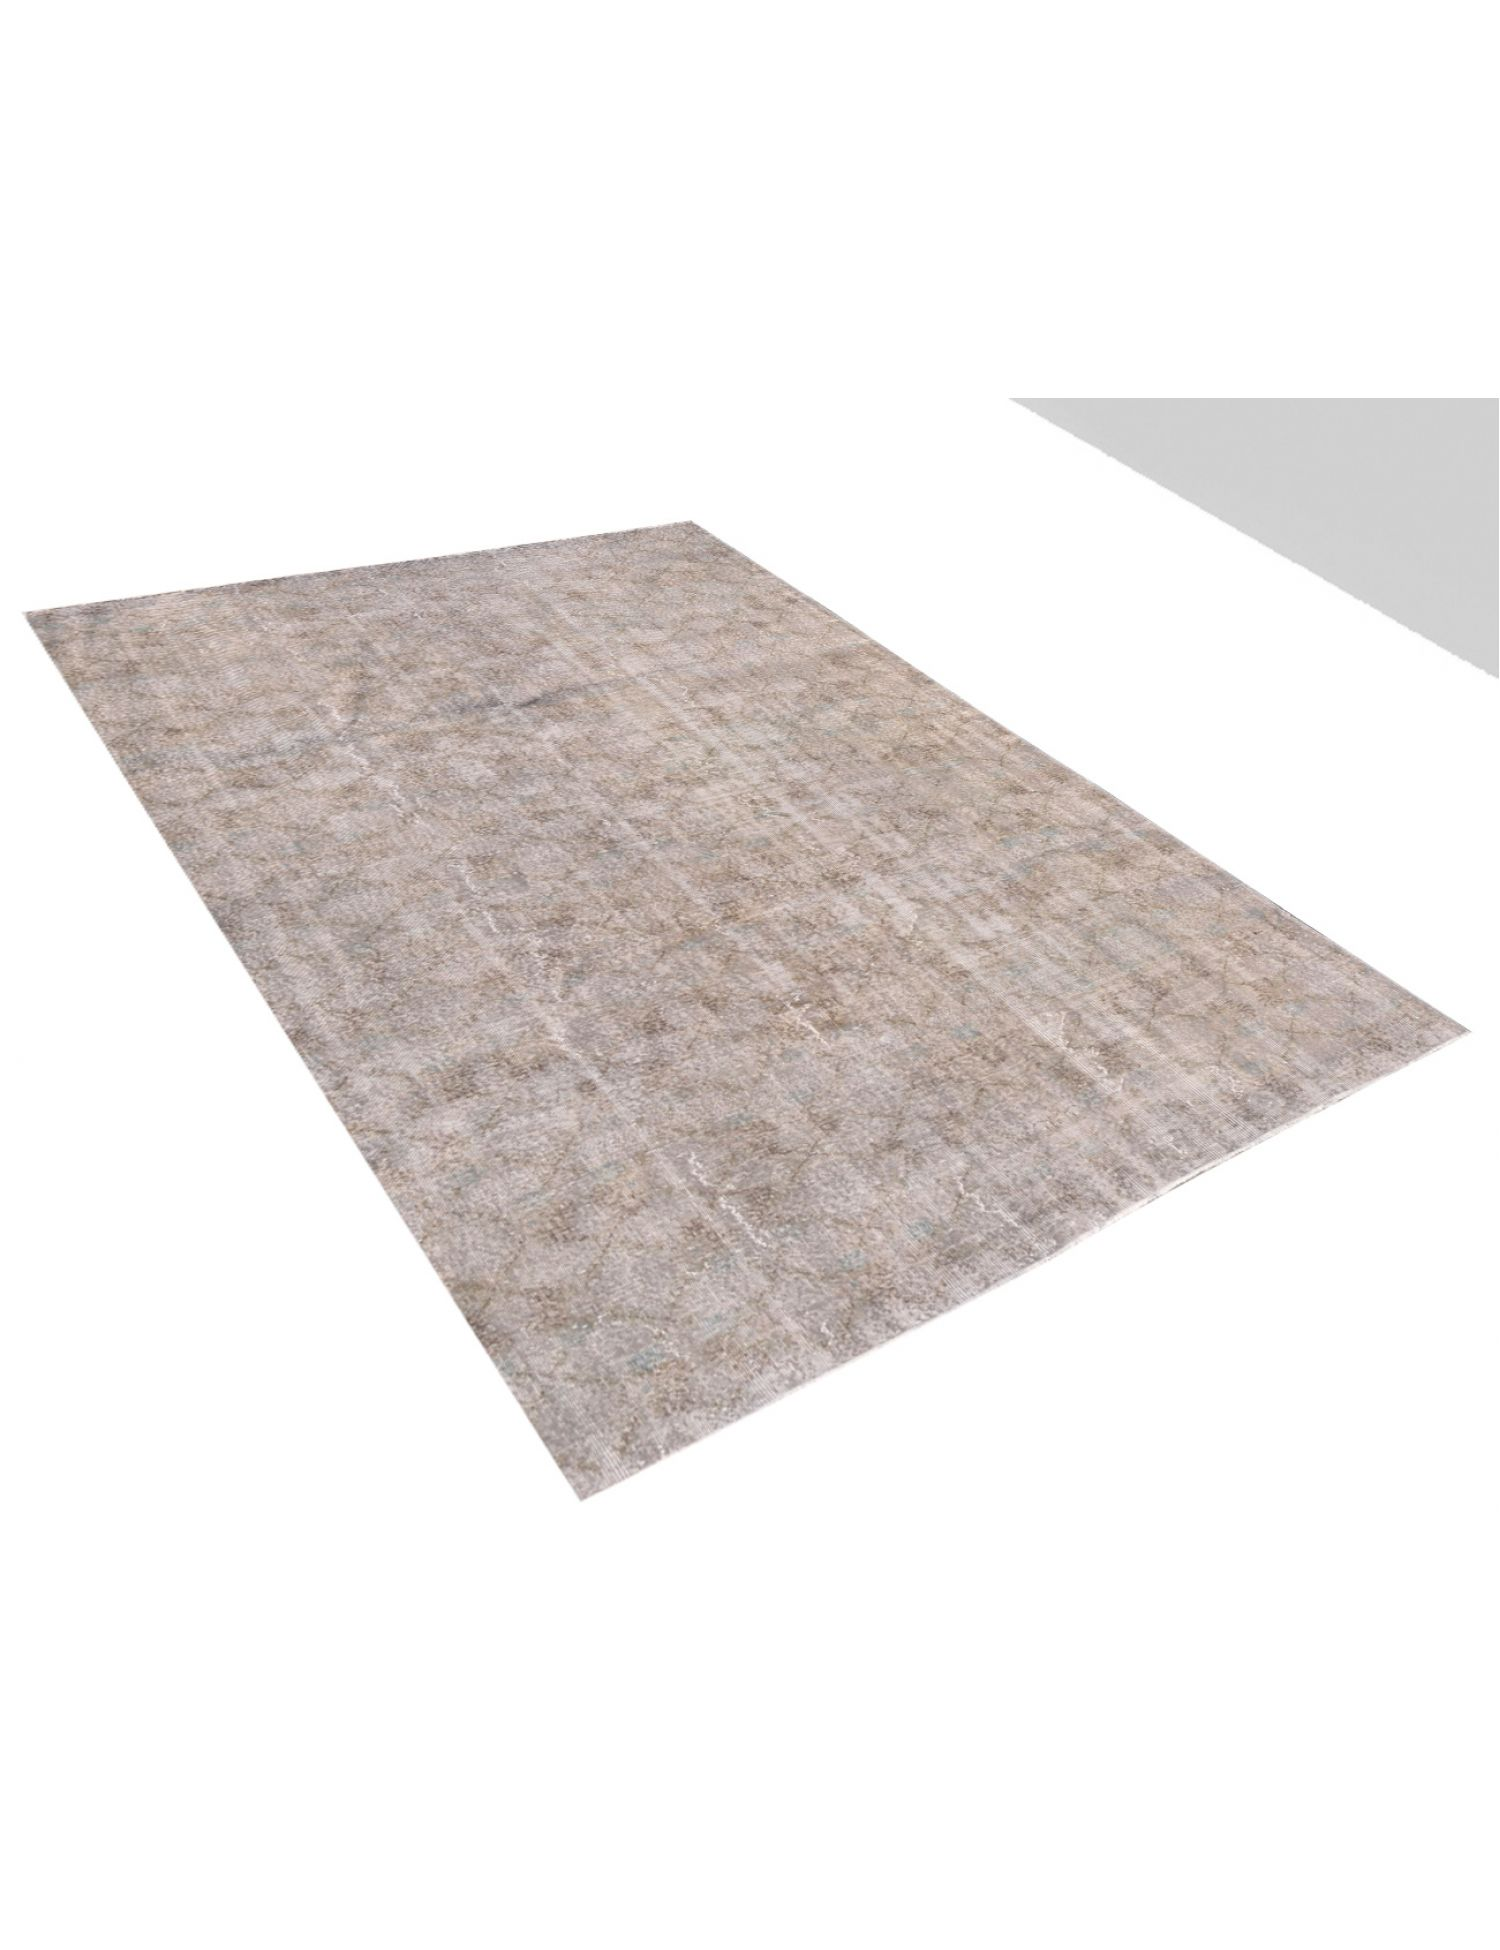 Vintage Carpet  grey <br/>310 x 183 cm